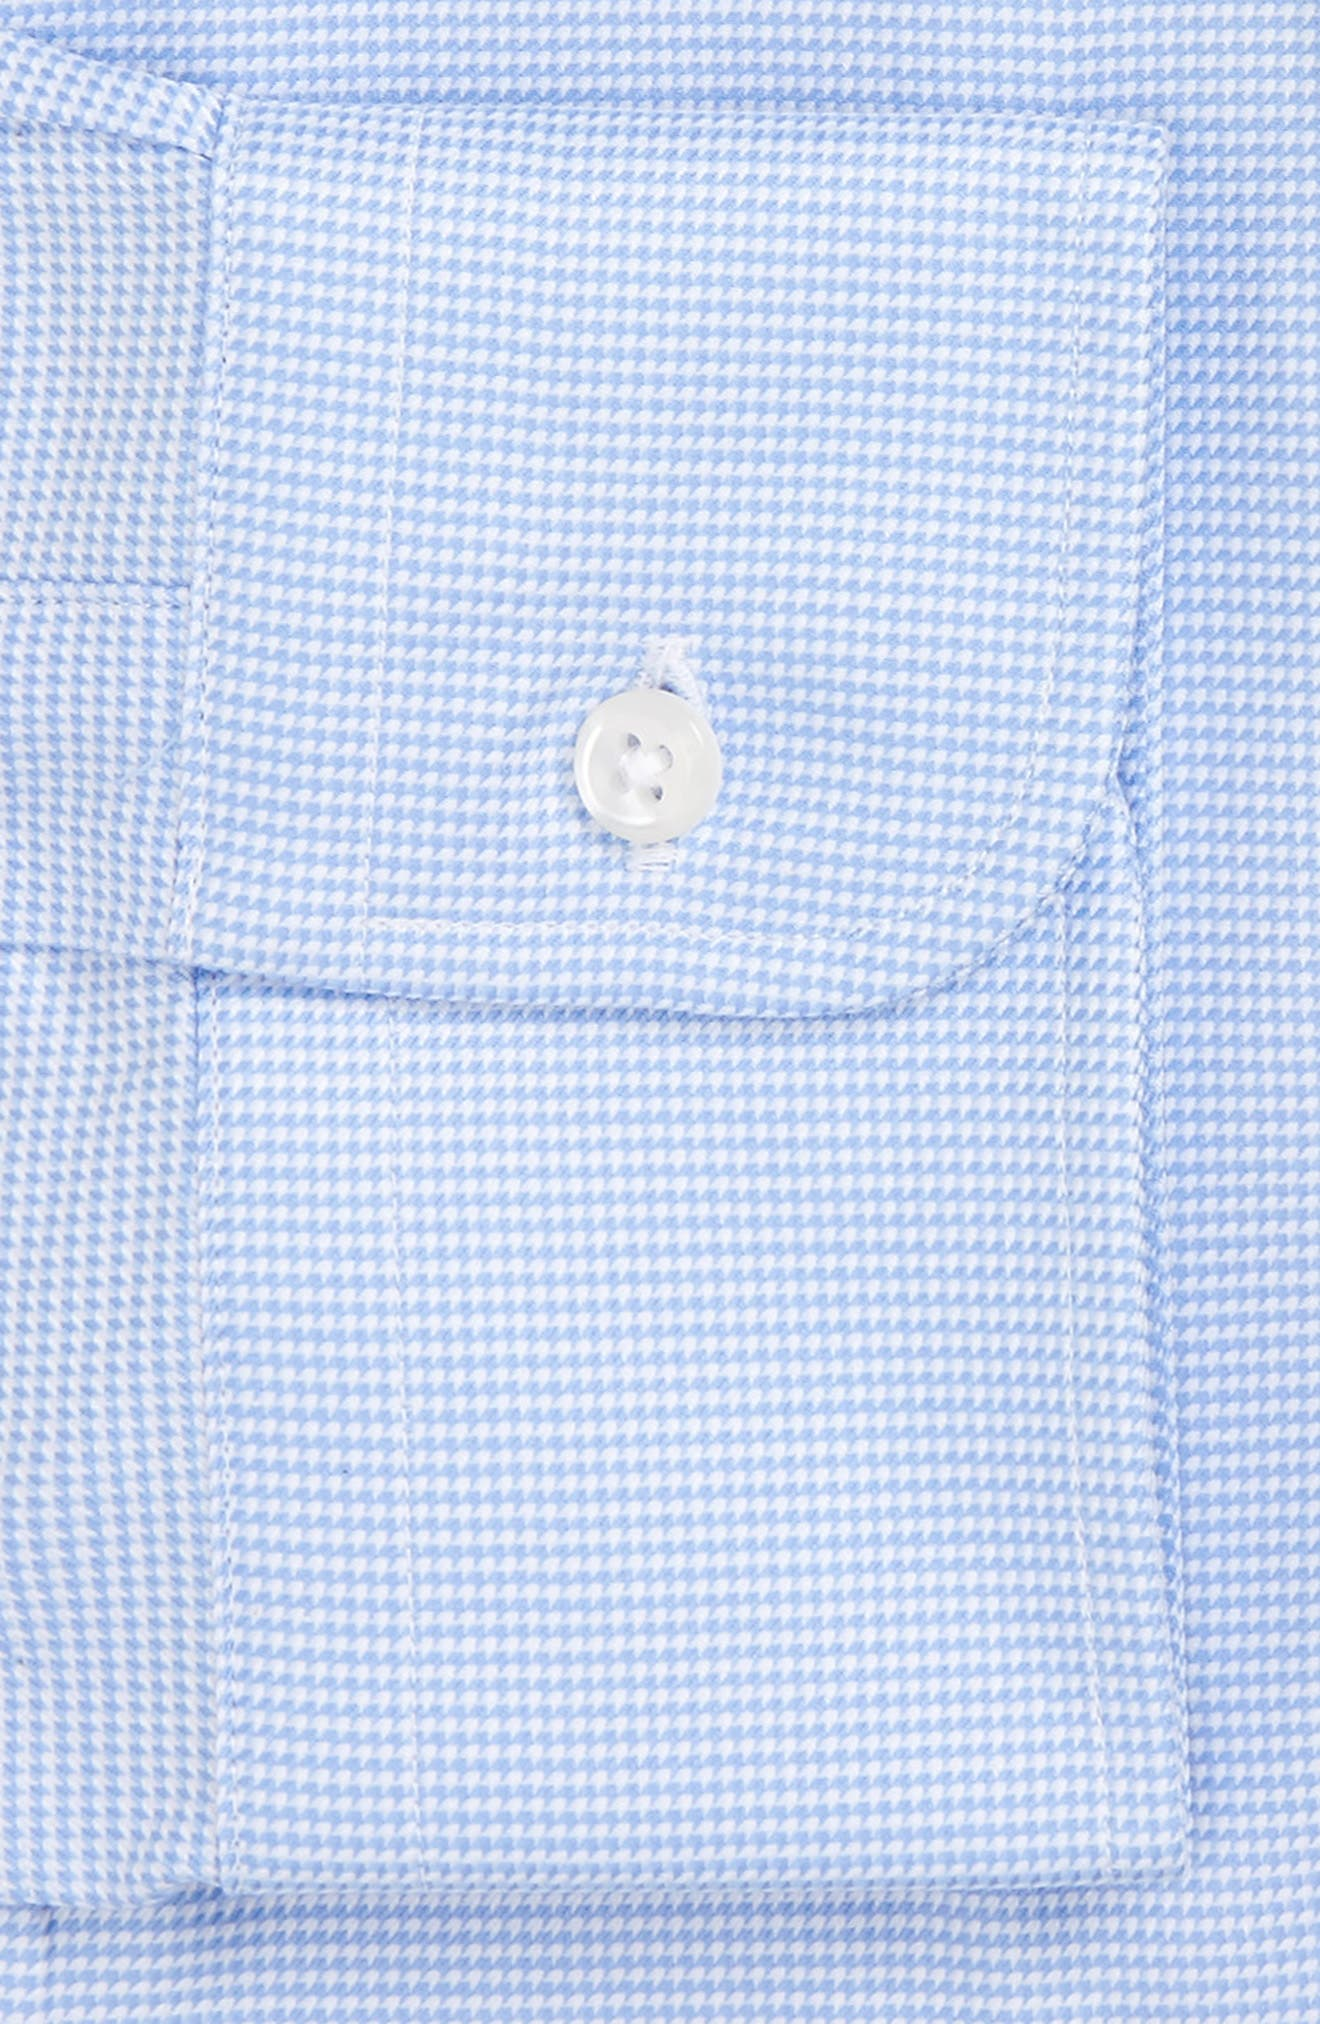 NORDSTROM MEN'S SHOP,                             Classic Fit Microgrid Dress Shirt,                             Alternate thumbnail 4, color,                             BLUE ROBIN